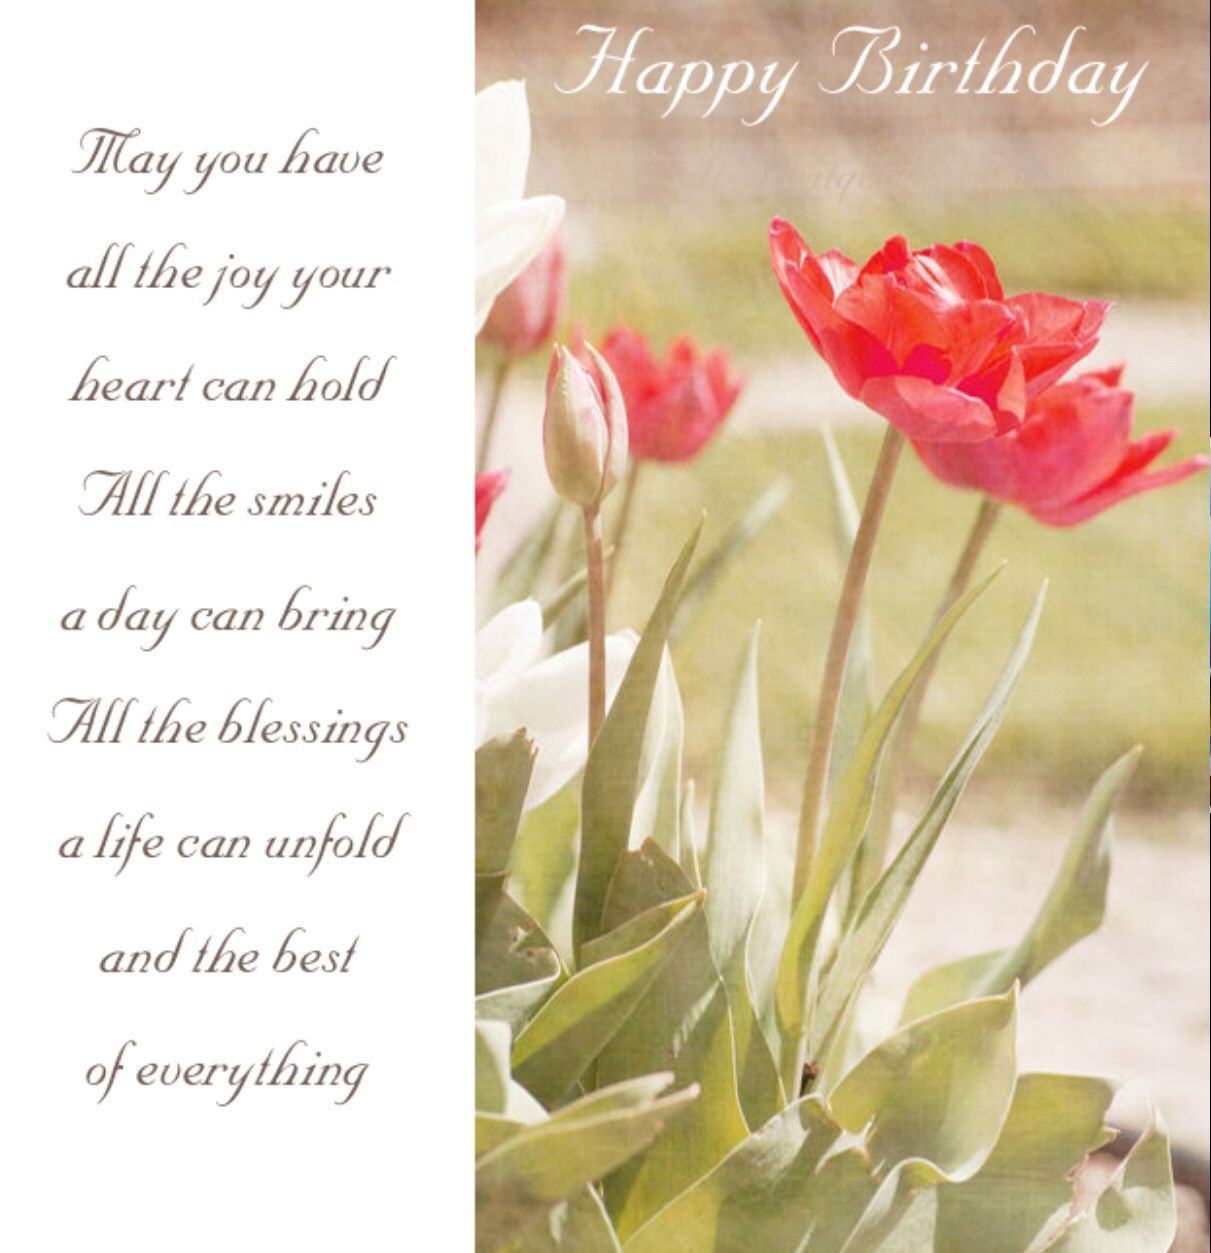 The best happy birthday memes birthdays happy birthday and the best of everything on your birthday kristyandbryce Image collections